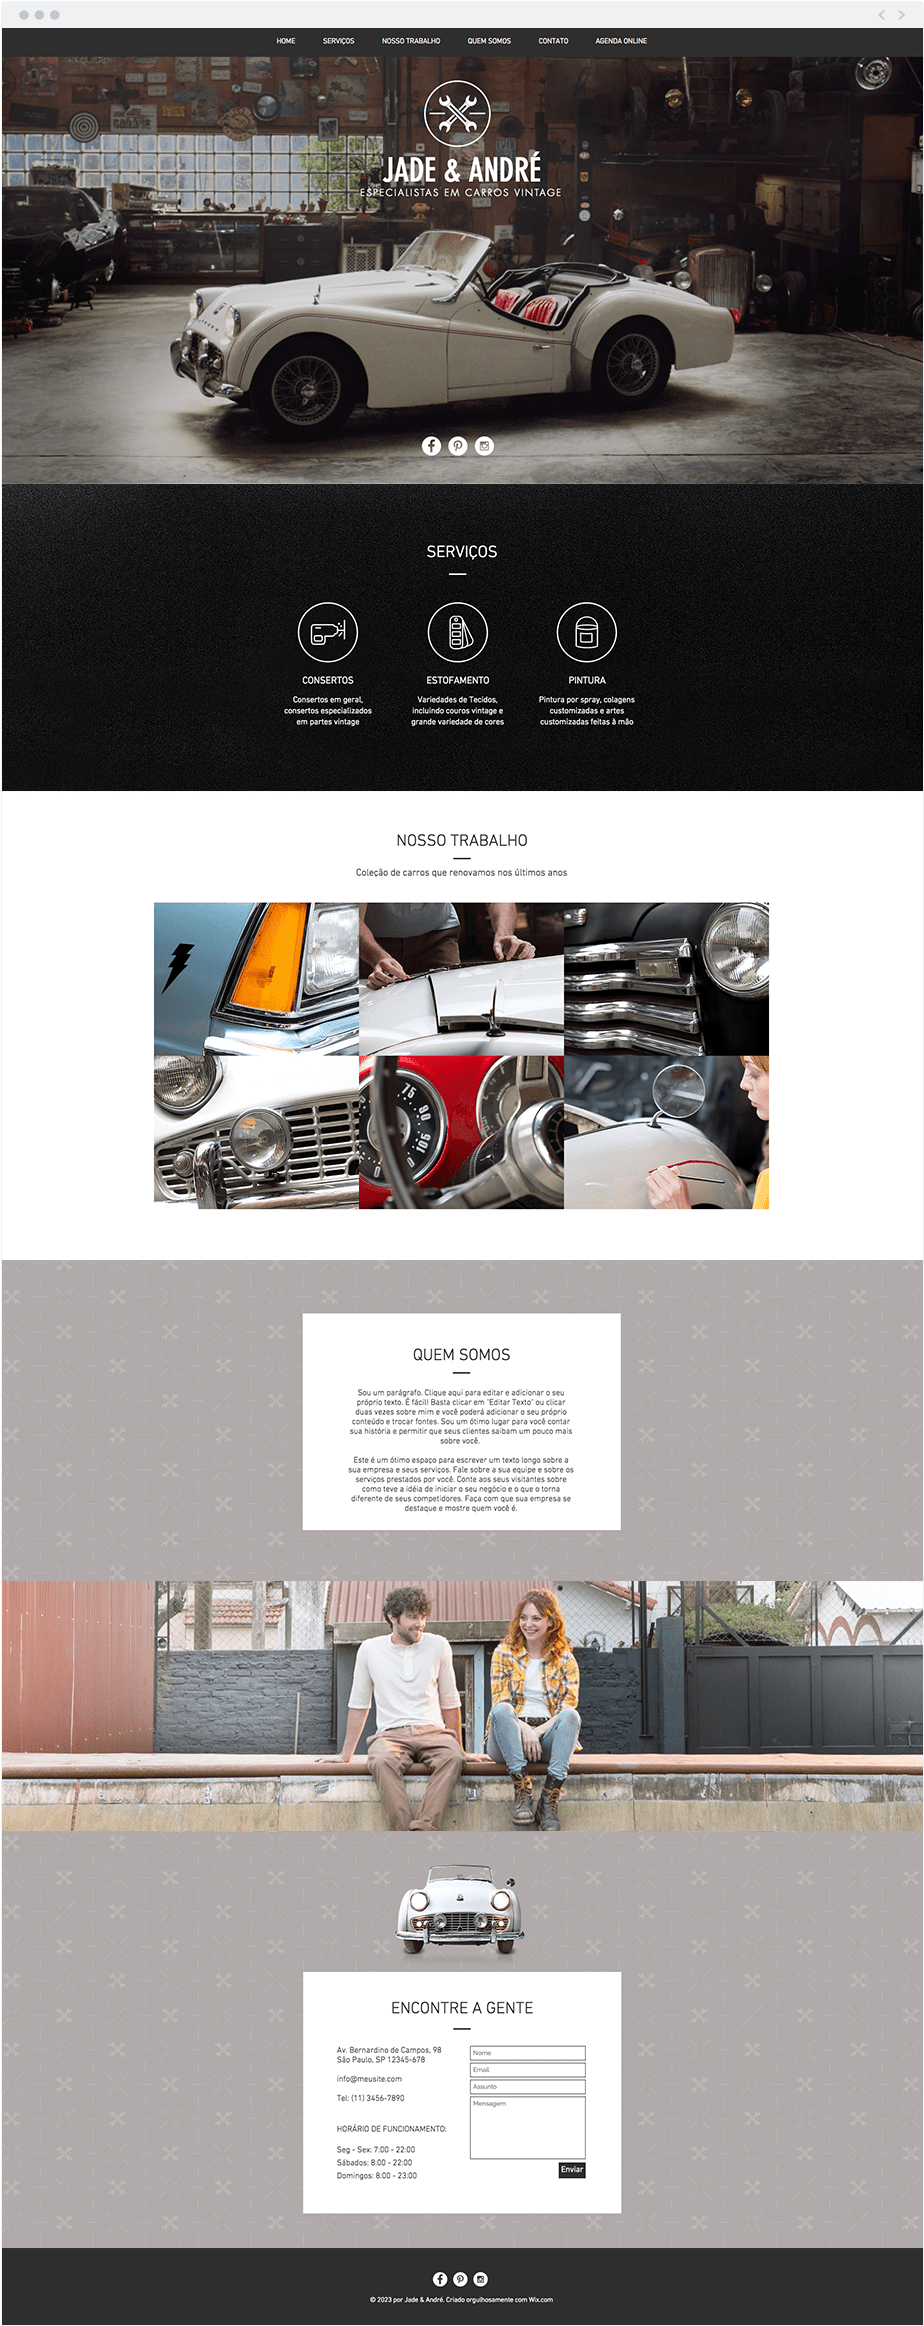 Template Wix Carros Vintage